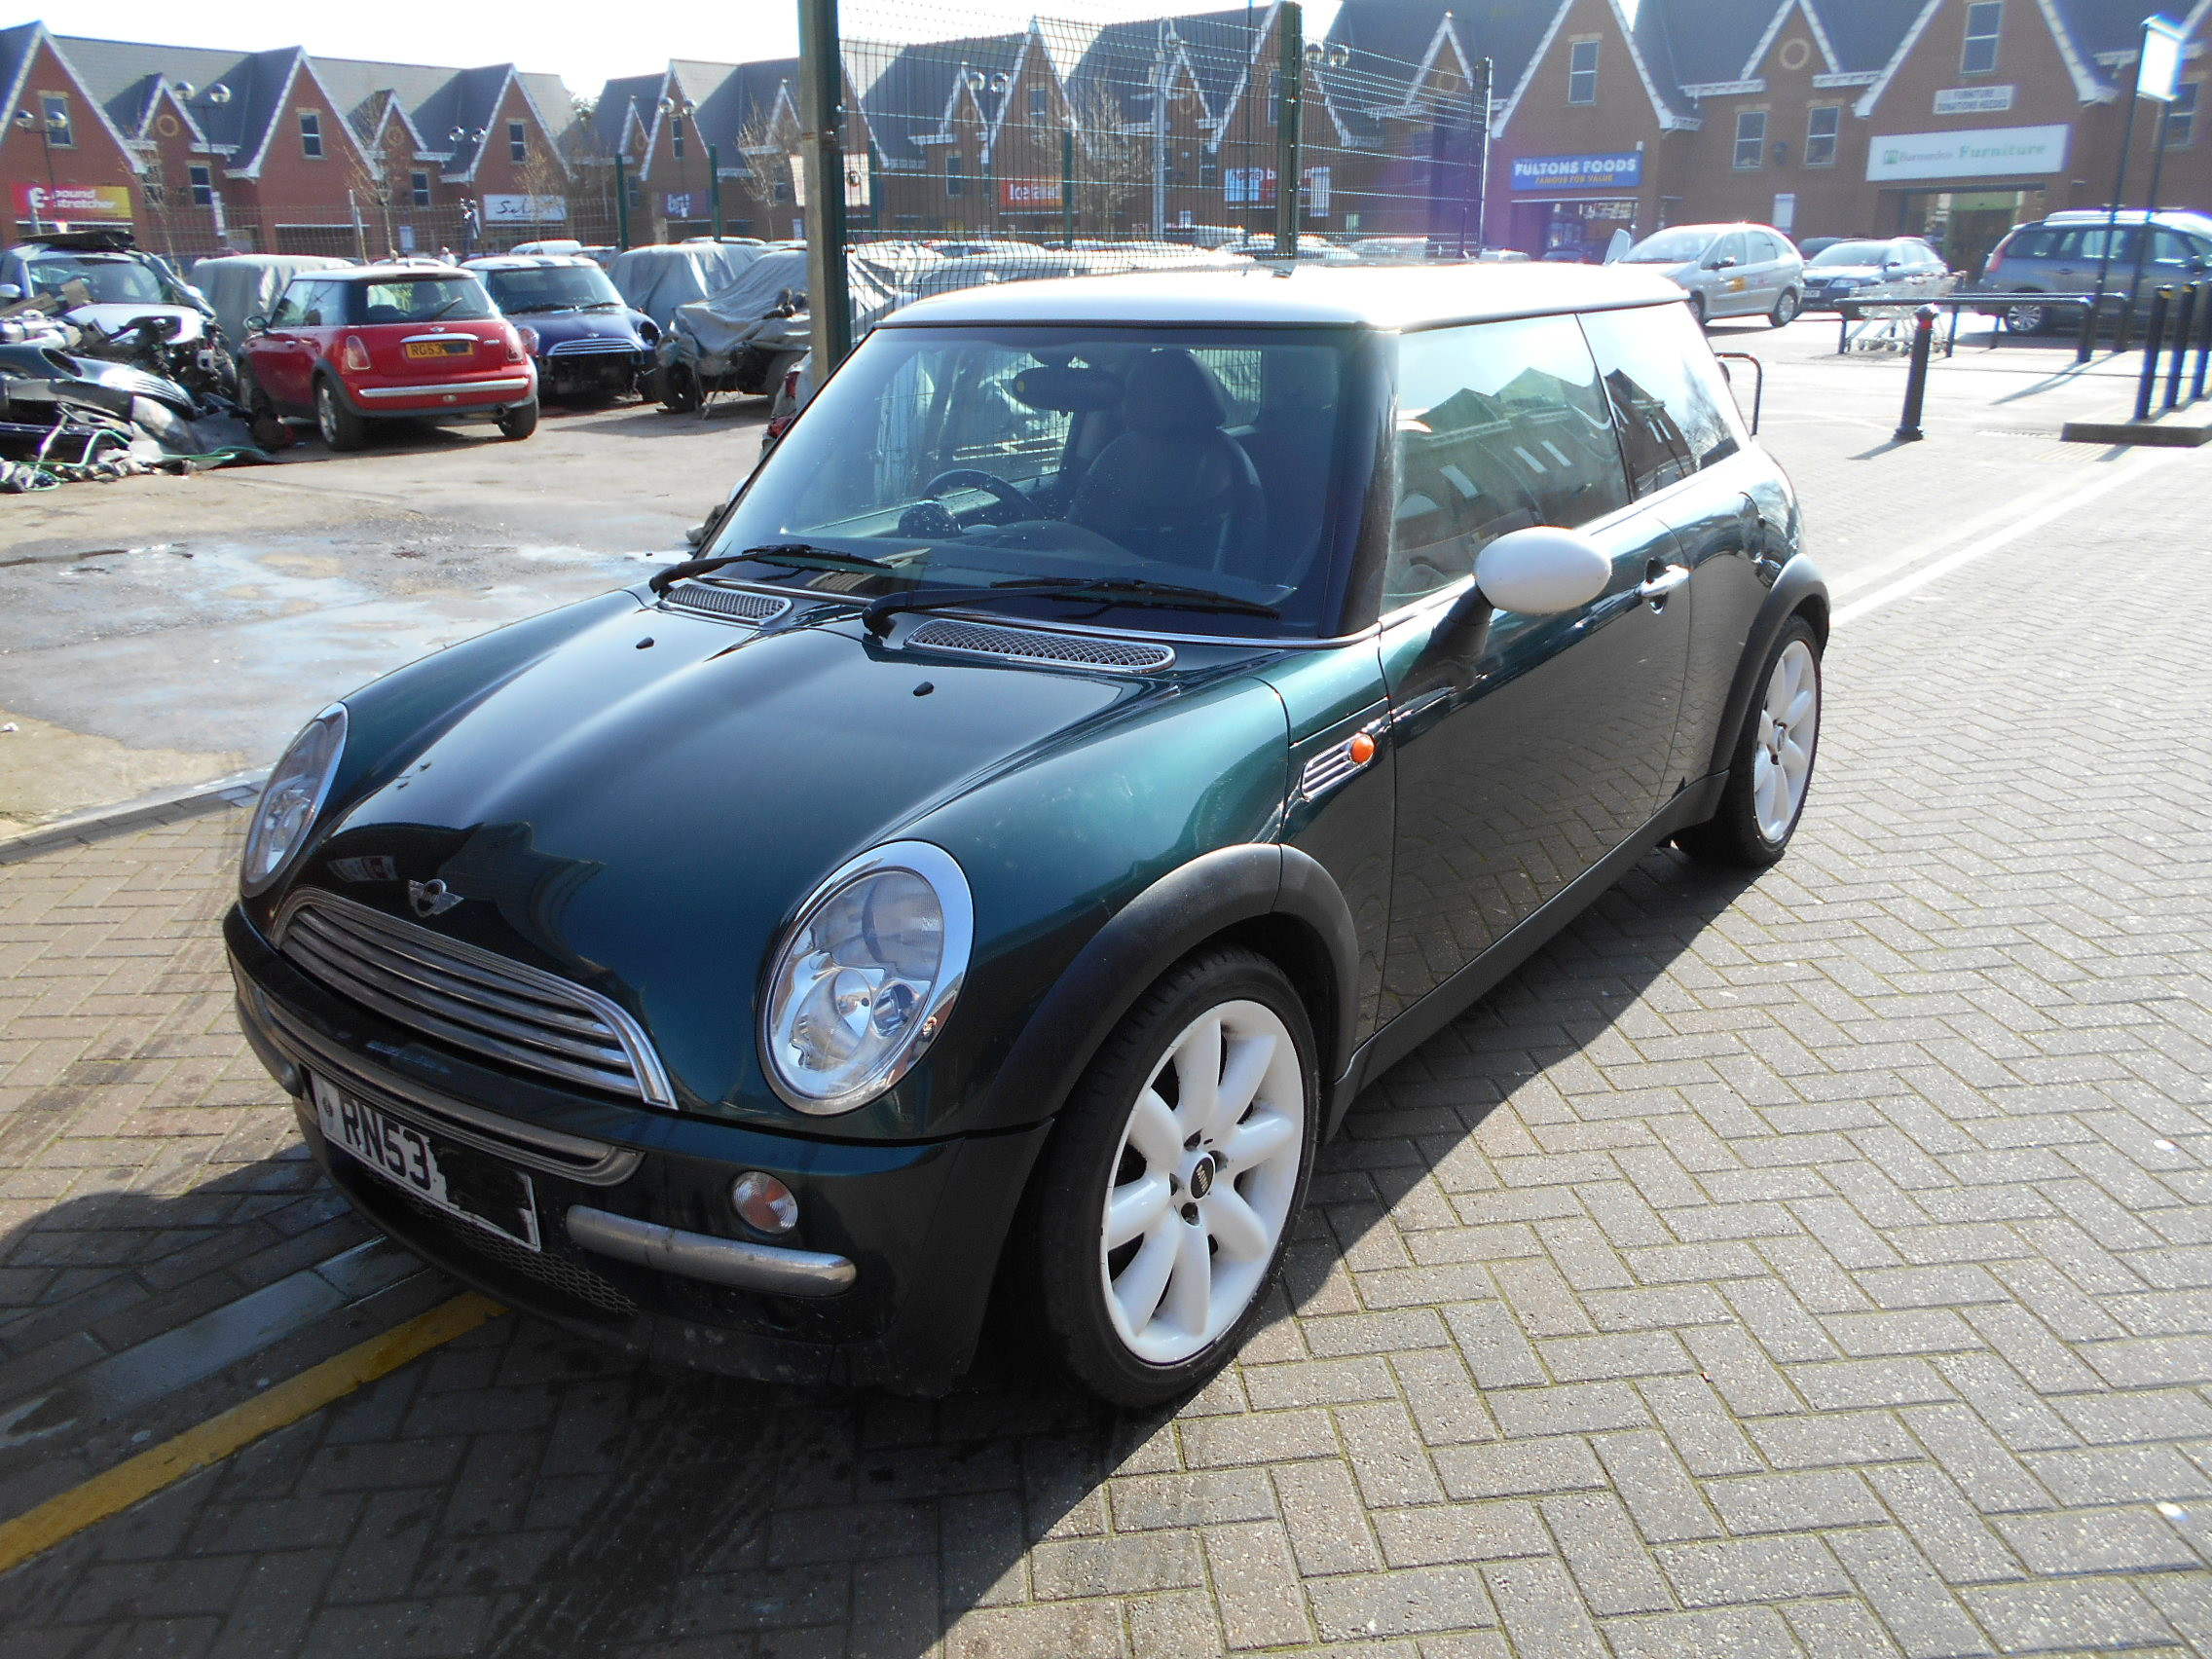 03 Green 1.6 BMW Mini Cooper - 3